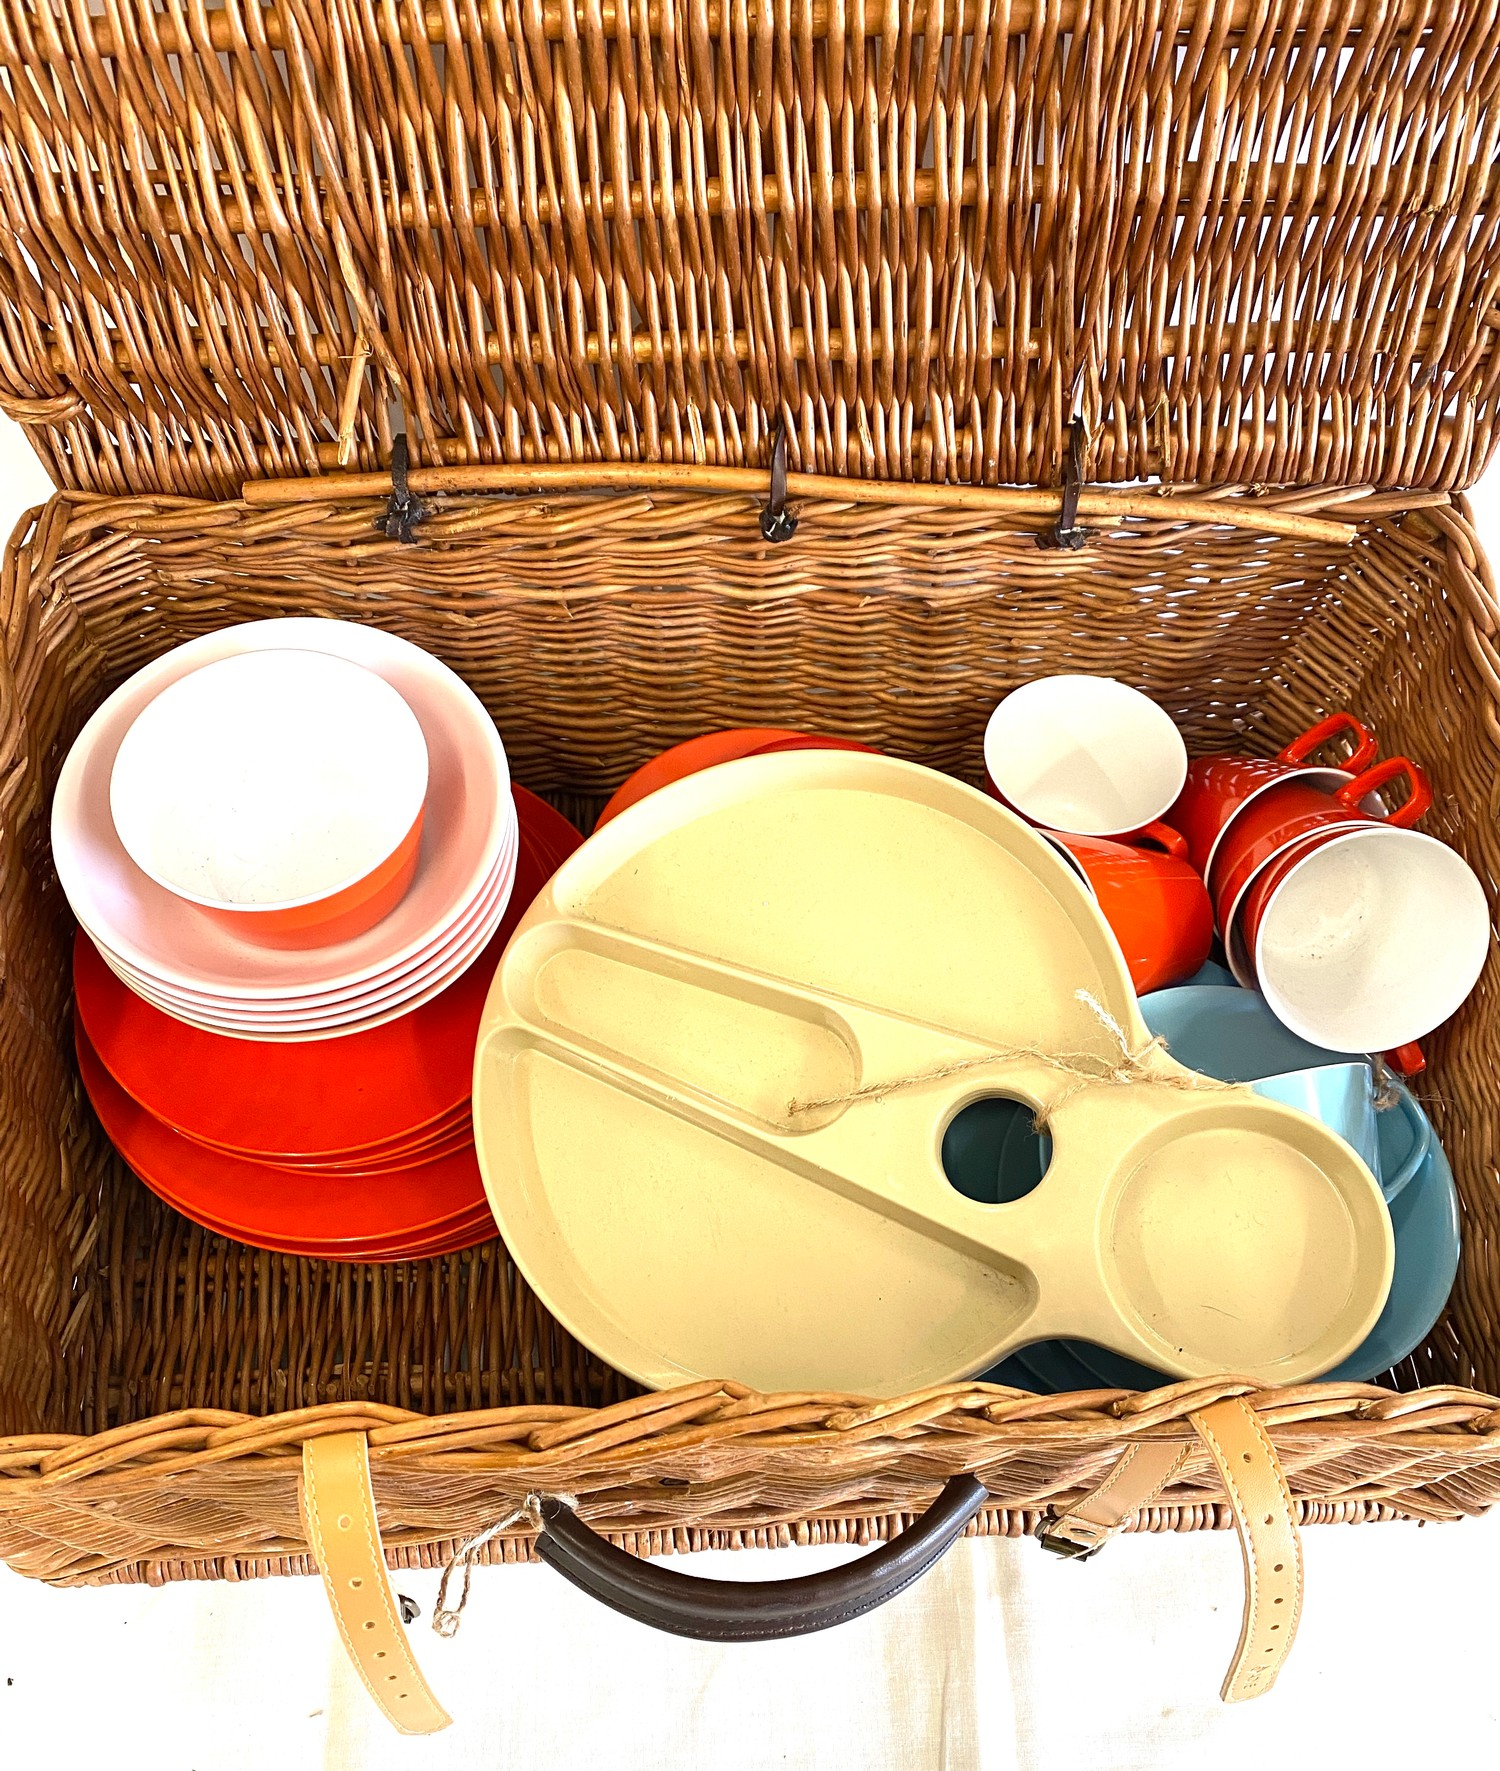 Wicker picnic basket with contents - Image 2 of 5